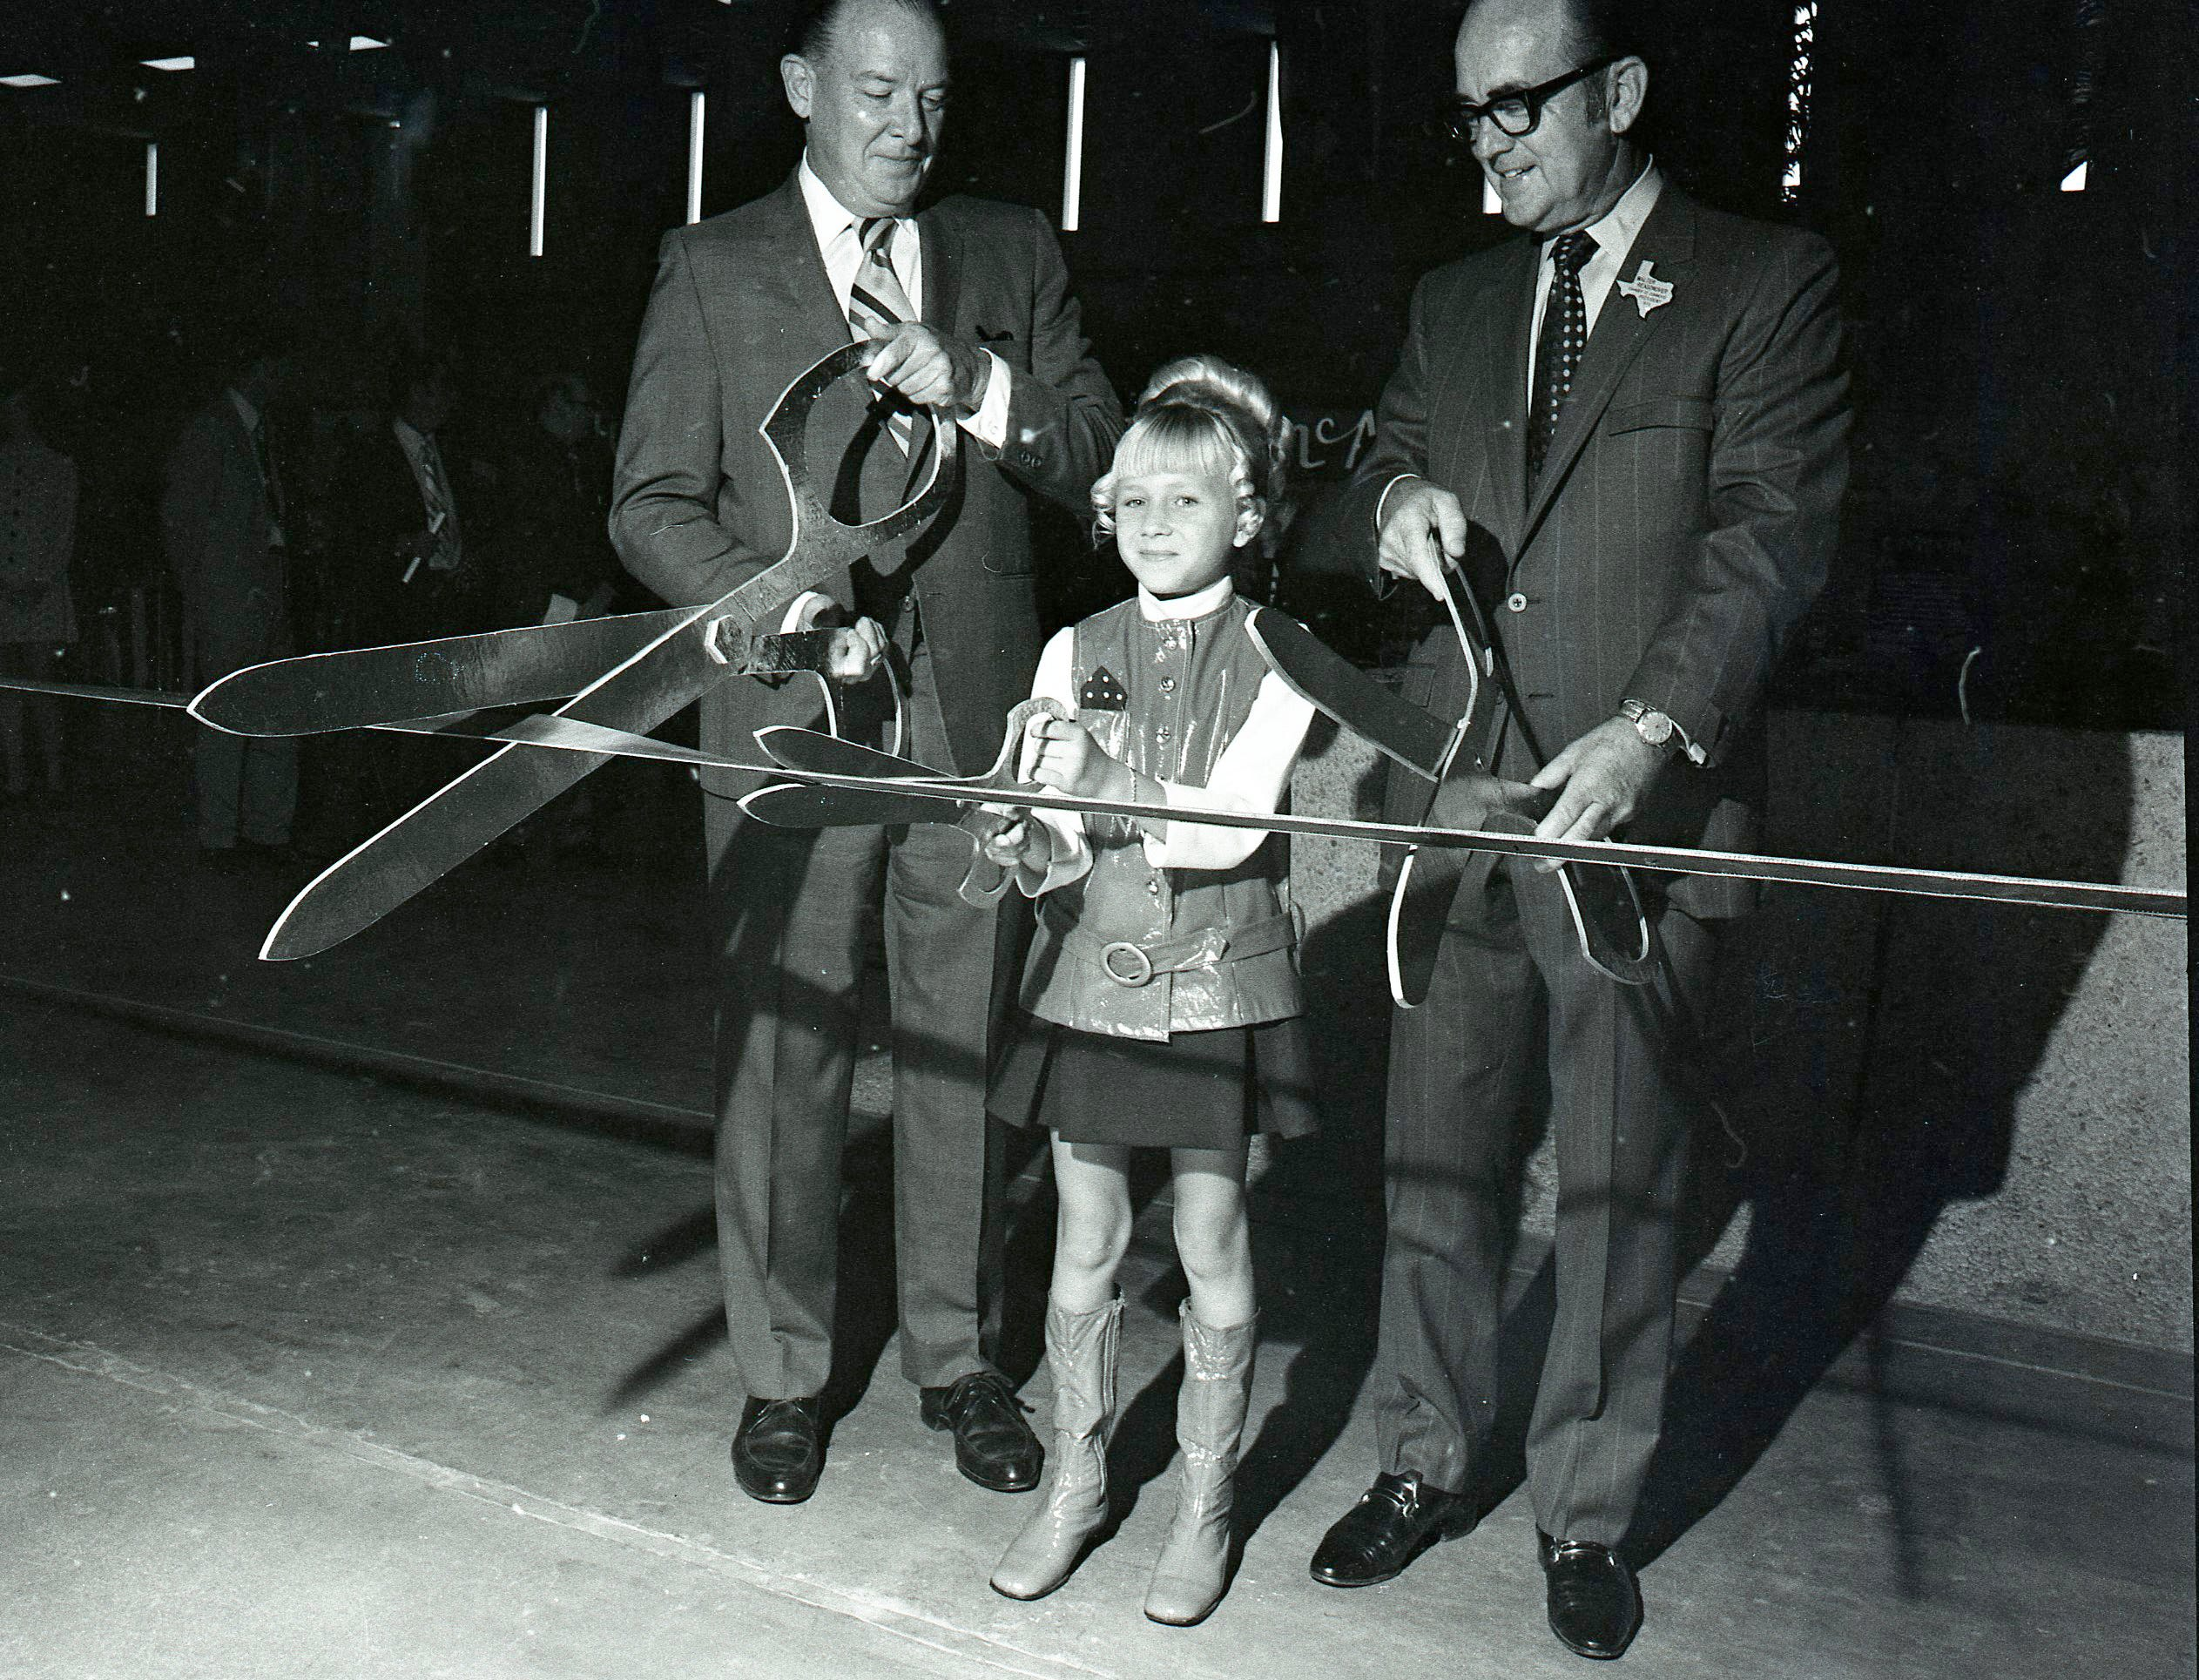 Margo Deckert, 9, grandaughter of mall owner Roy Smith, uses a smaller set of shears as at the ribboncutting for Padre Staples Mall in Corpus Christi on July 30, 1970. She was joined by William H. Keys (left), president of the South Texas Chamber of Commerce, and Walter J. Reasonover (right), president of the Corpus Christi Chamber of Commerce.